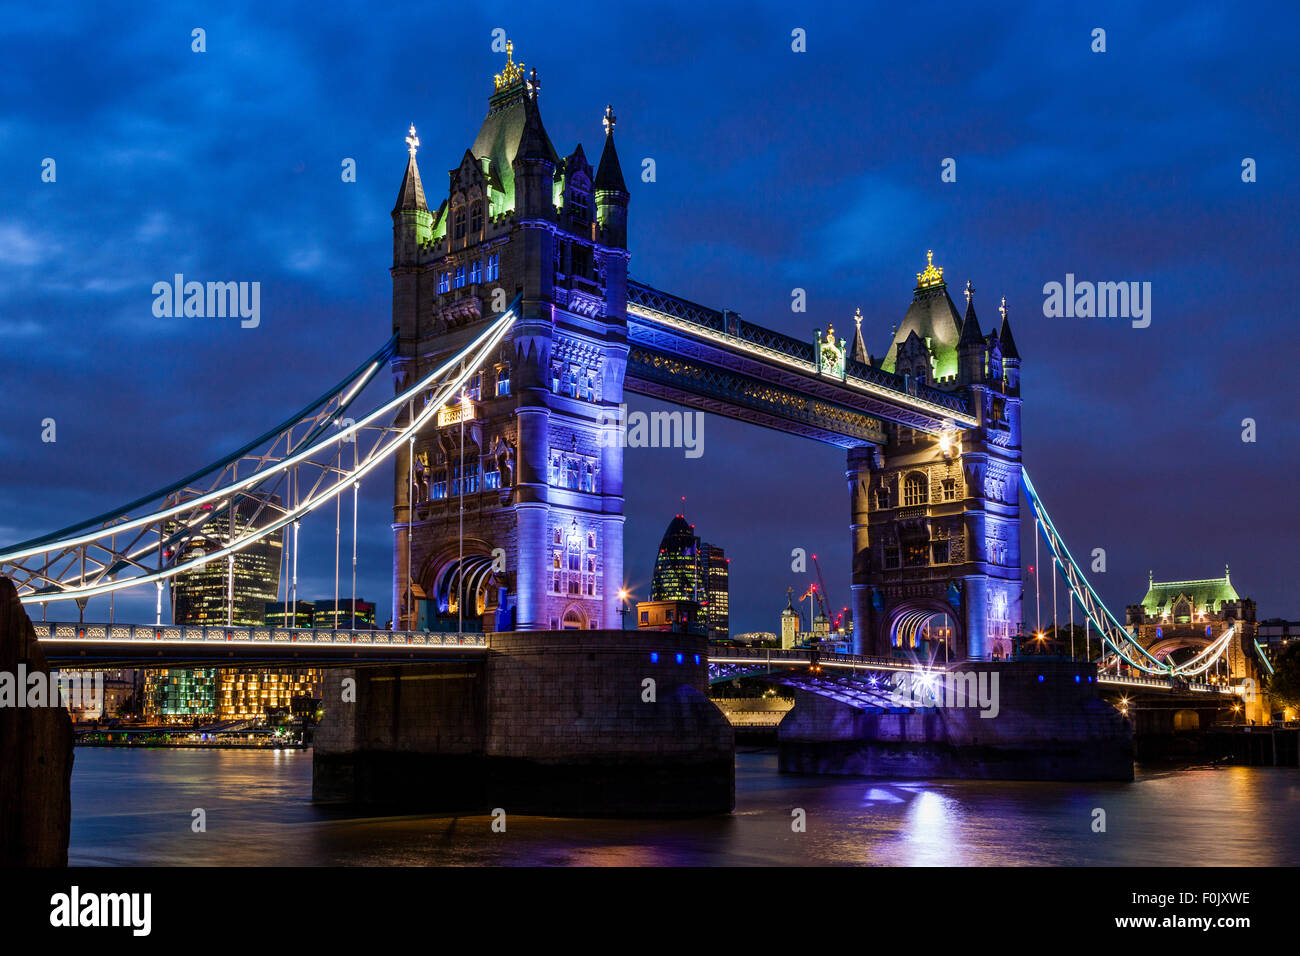 Tower Bridge, London, England - Stock Image